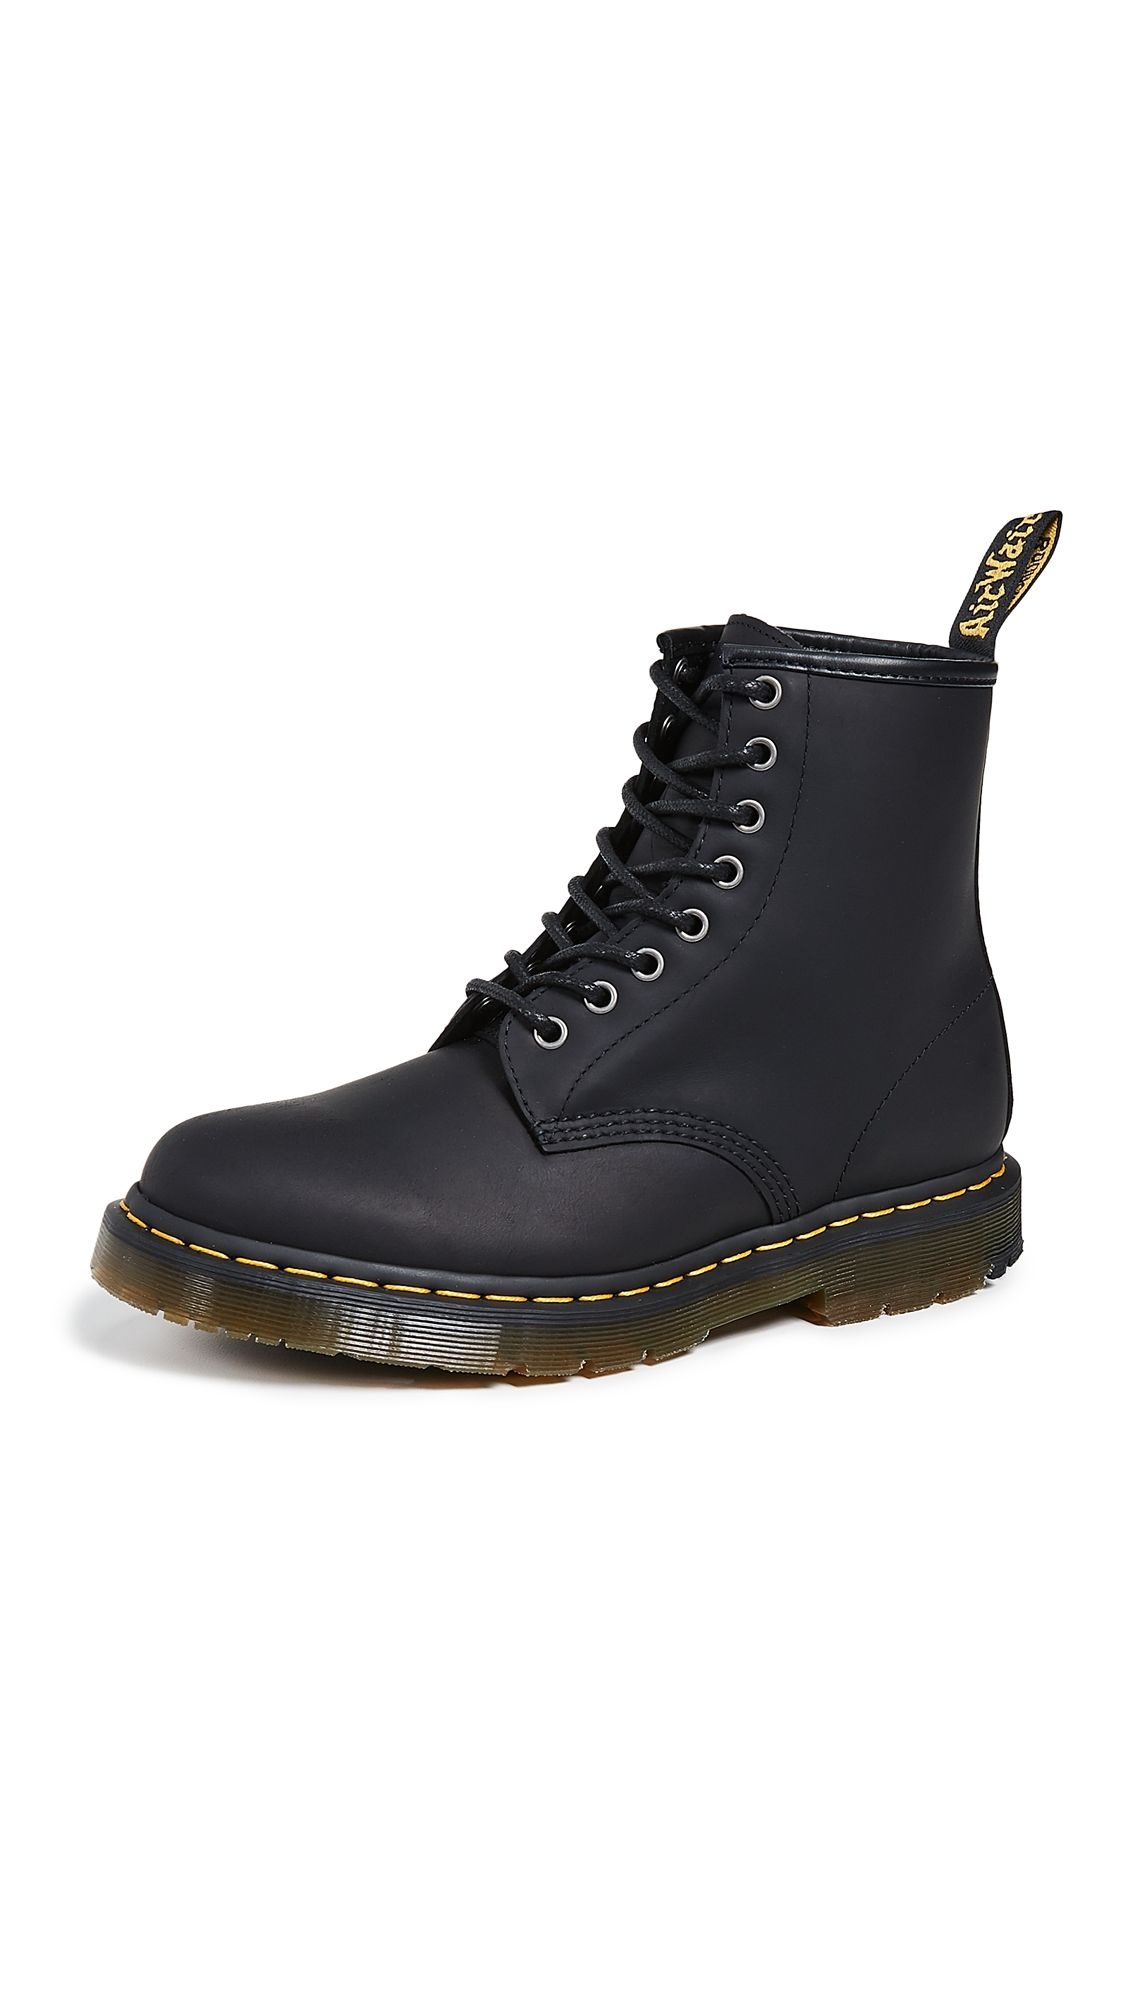 Dr martens combs tech boots in black